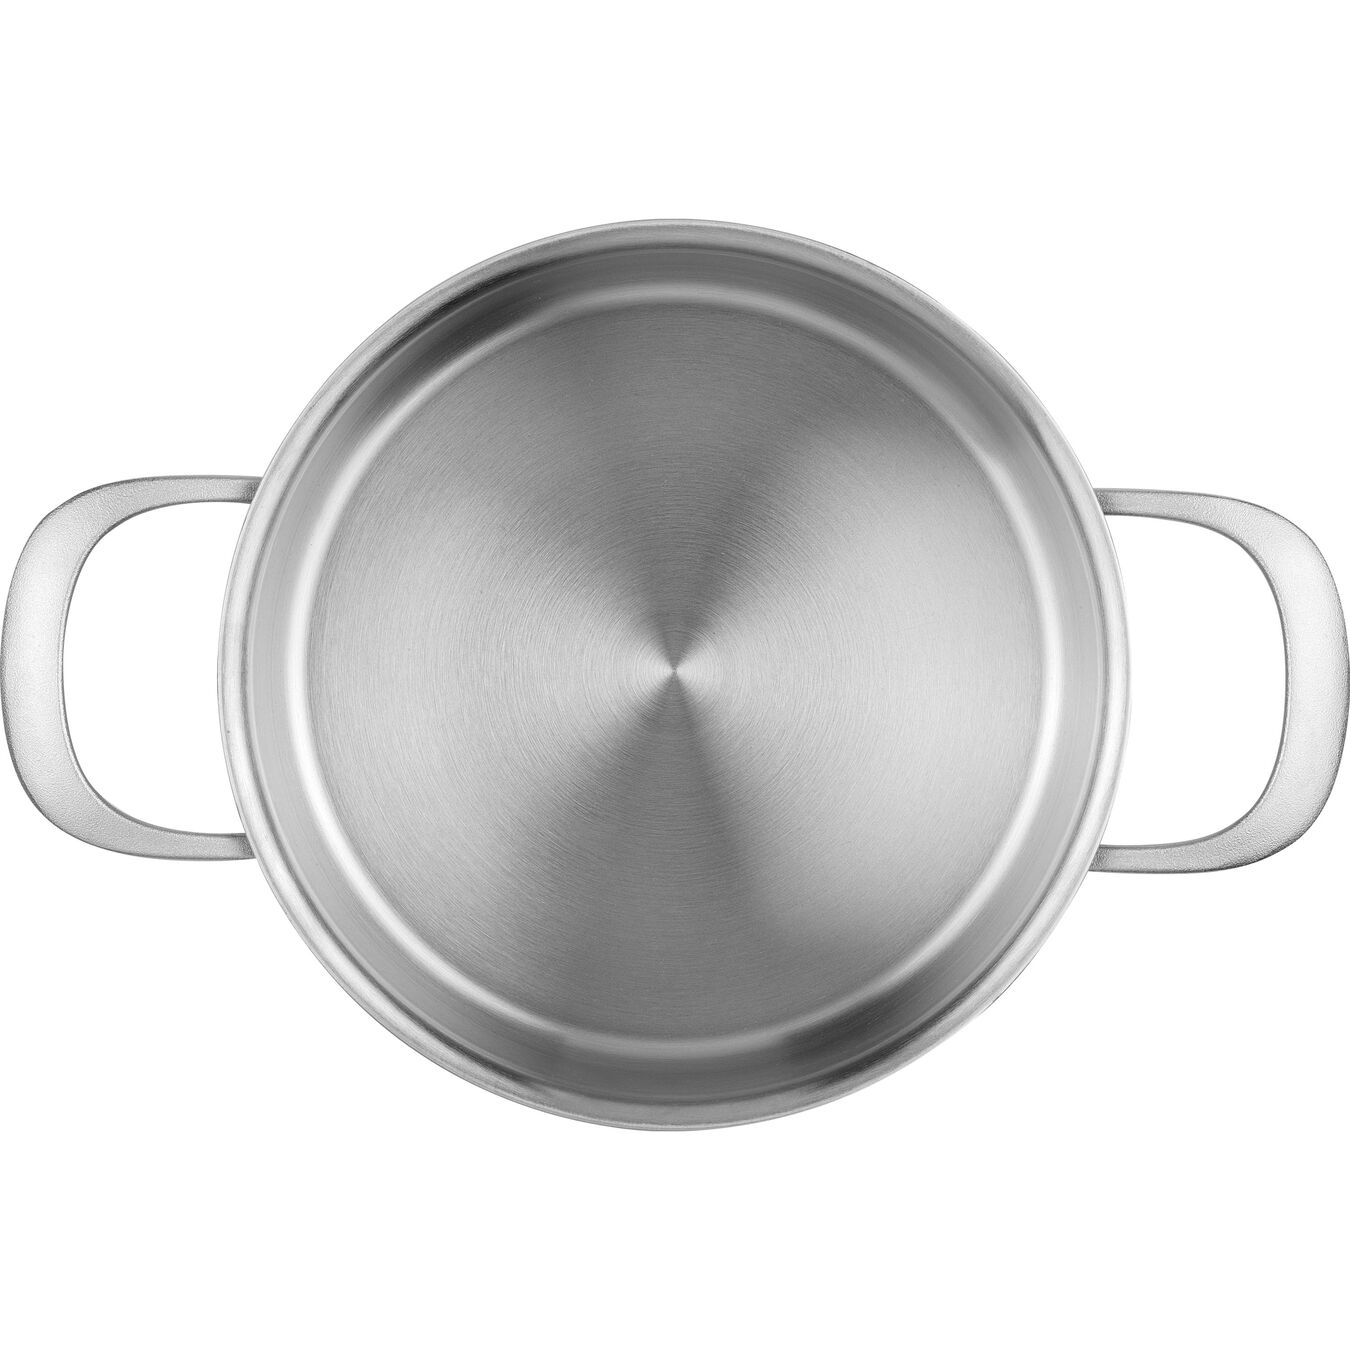 5.25 l 18/10 Stainless Steel Stew pot,,large 2